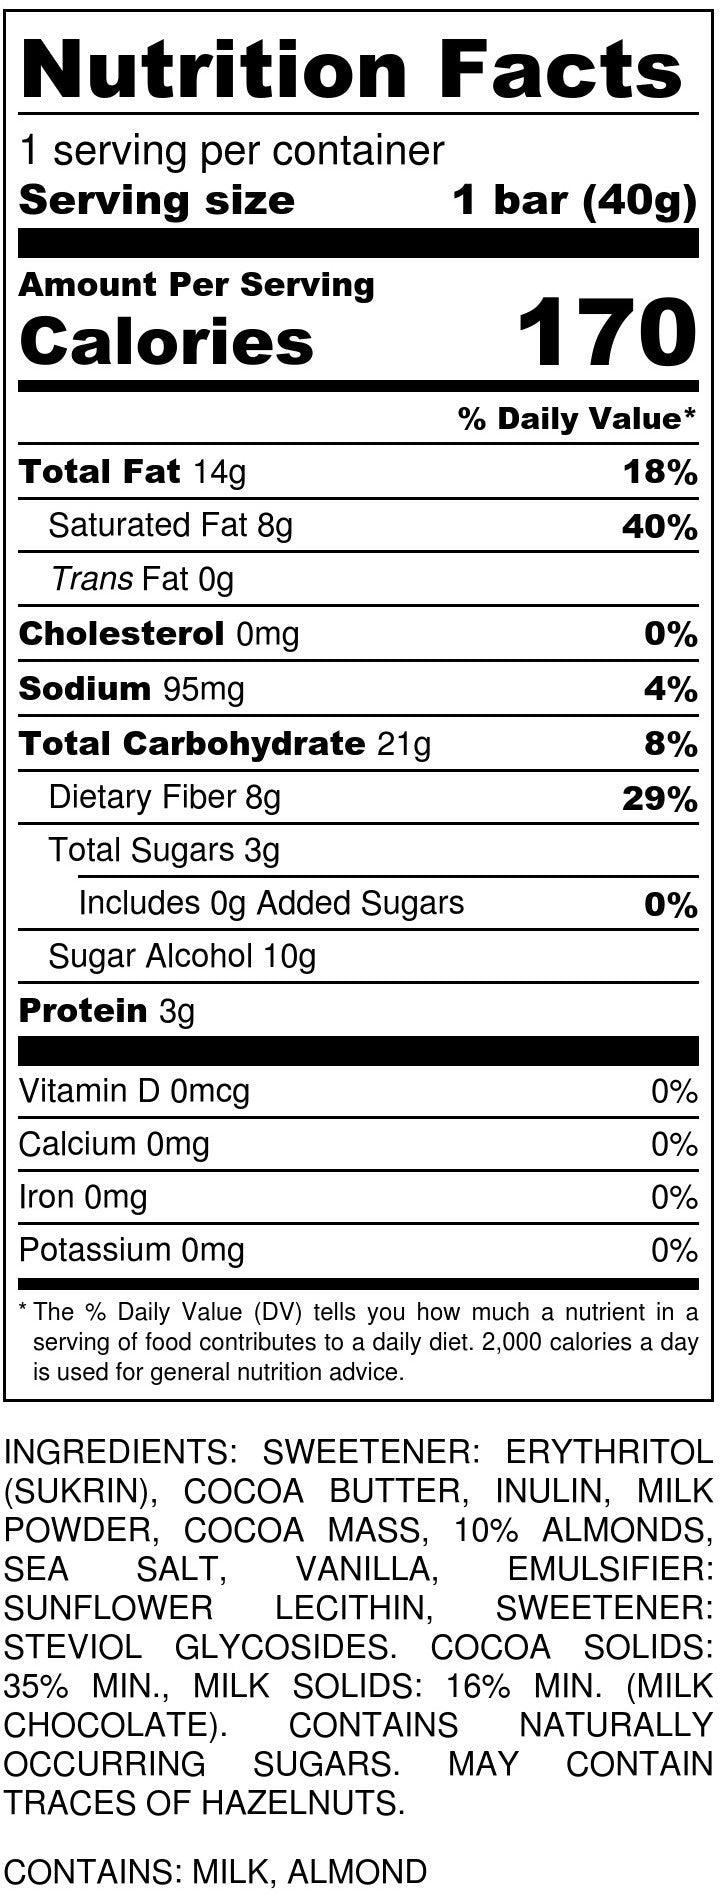 Milk Chocolate w/ Almonds & Sea Salt Nutrition Facts